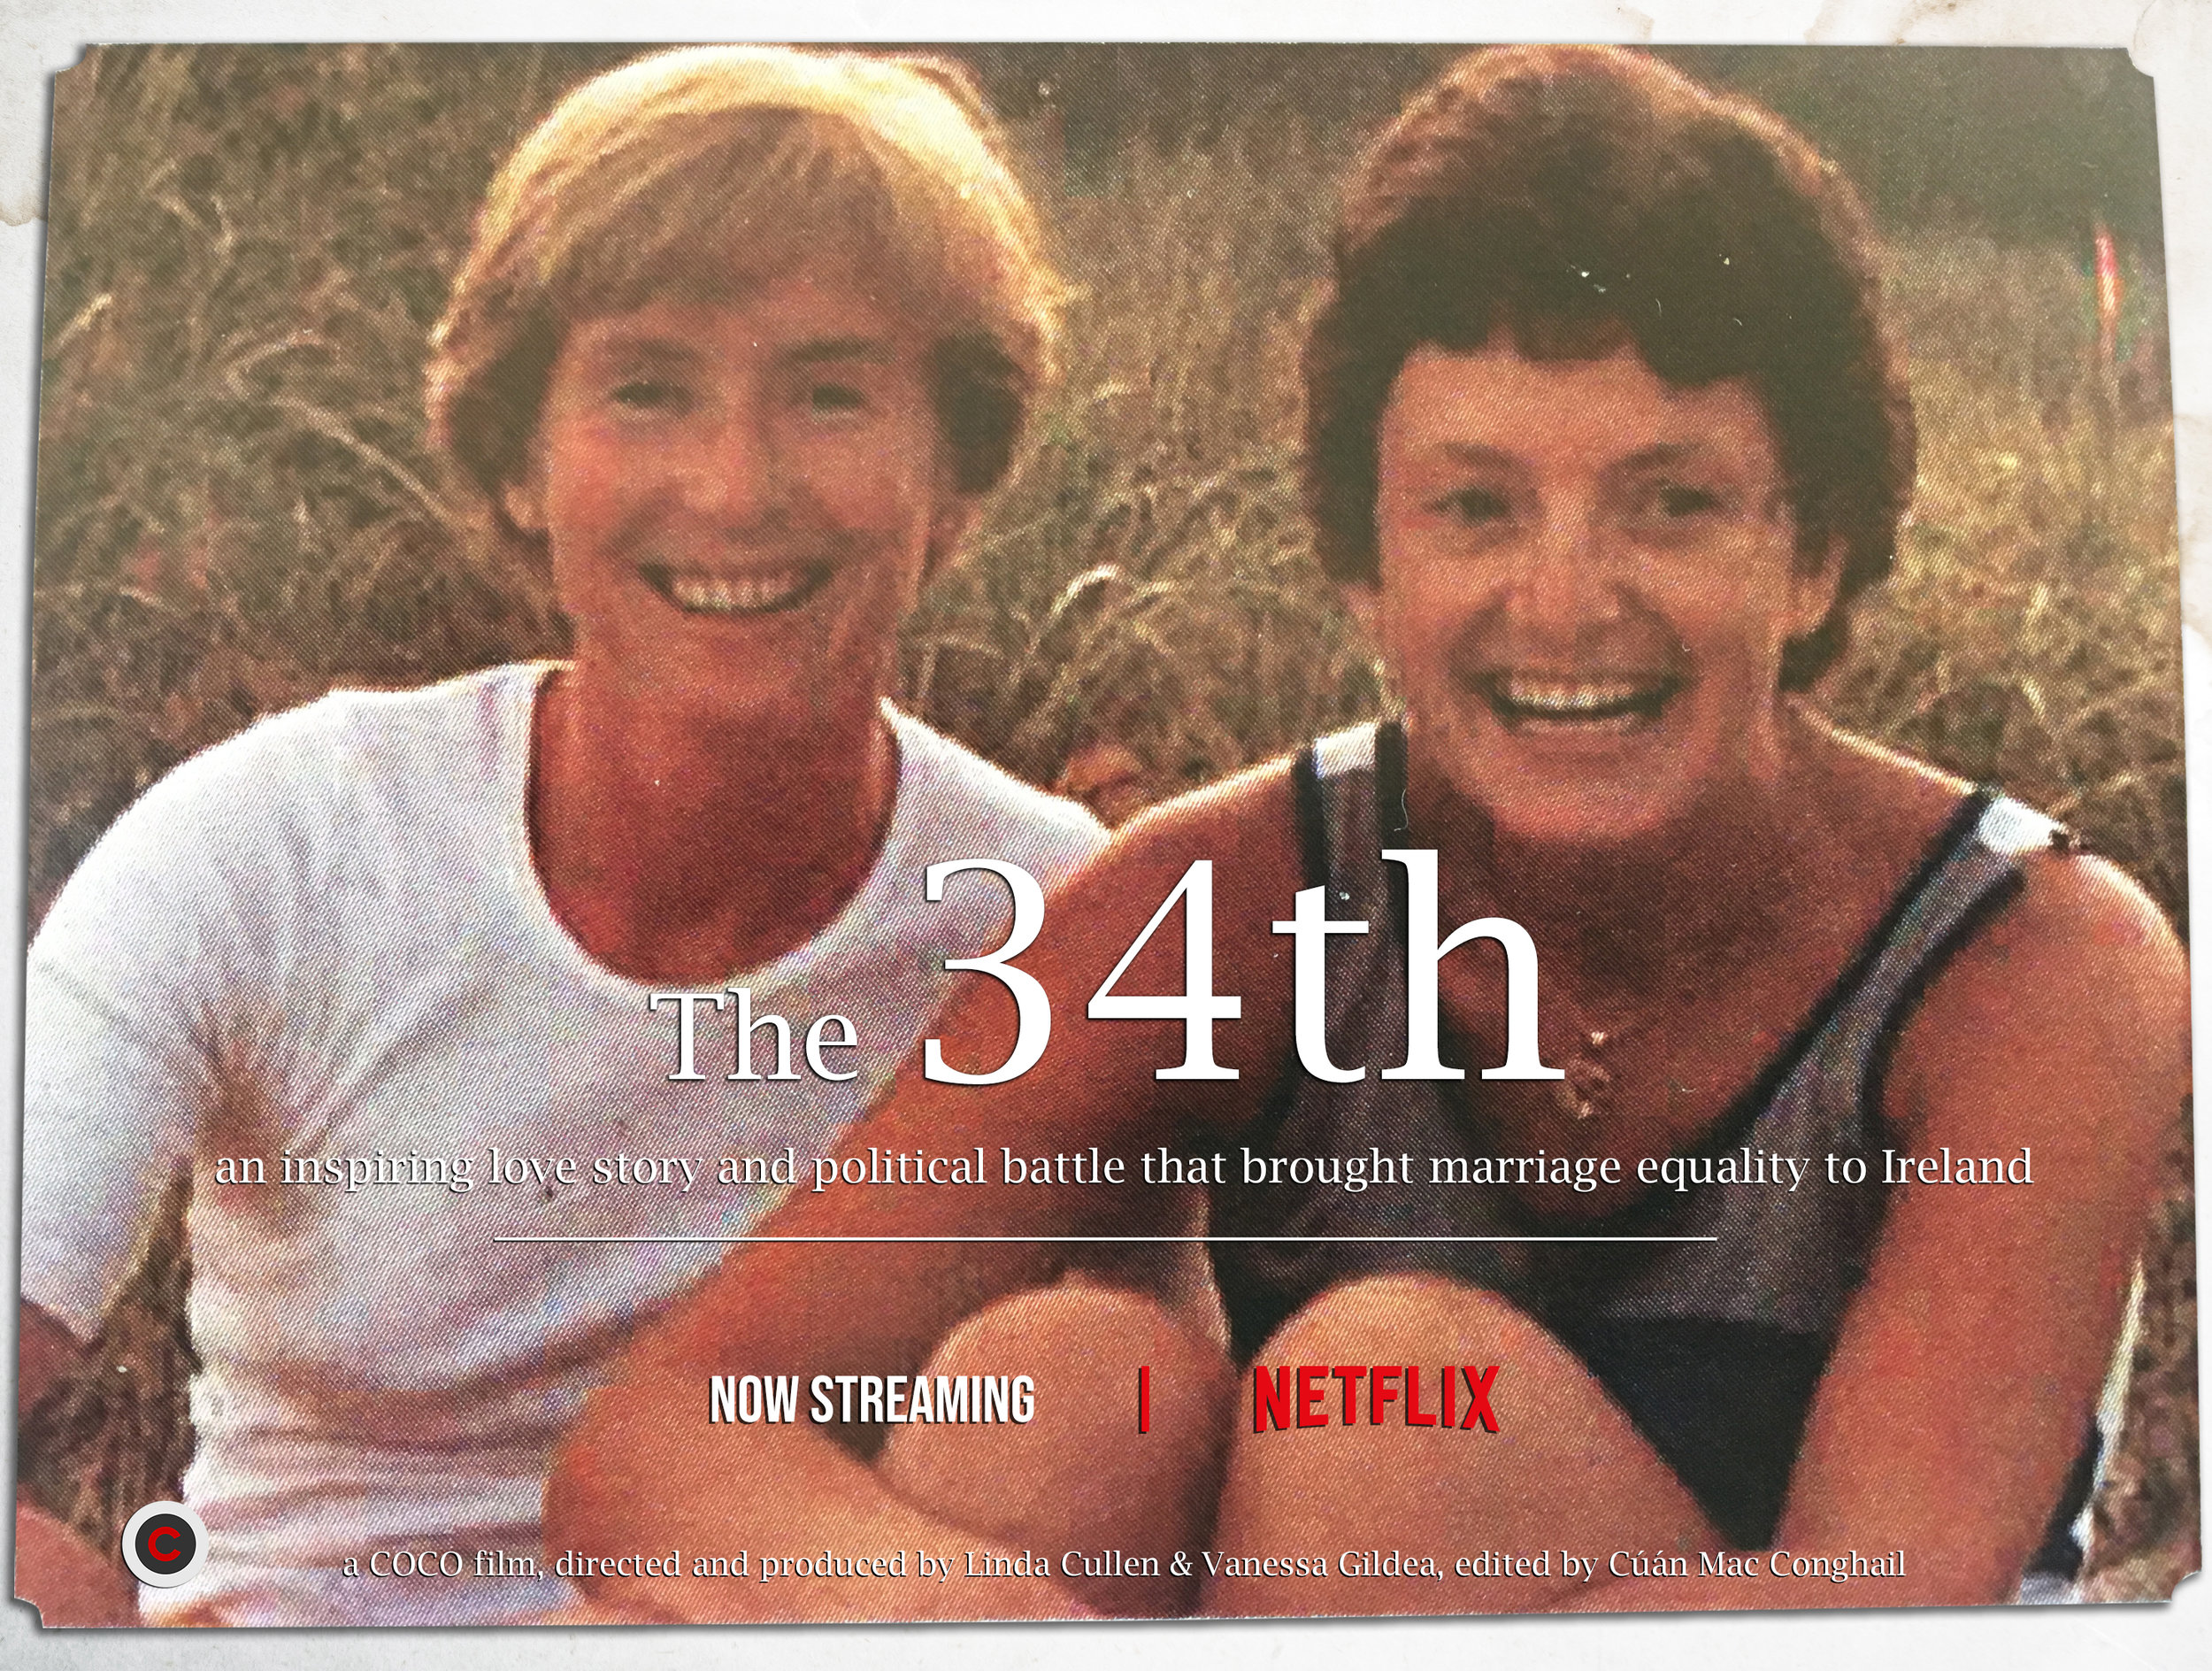 The 34th Poster Netflix Version V2.jpg